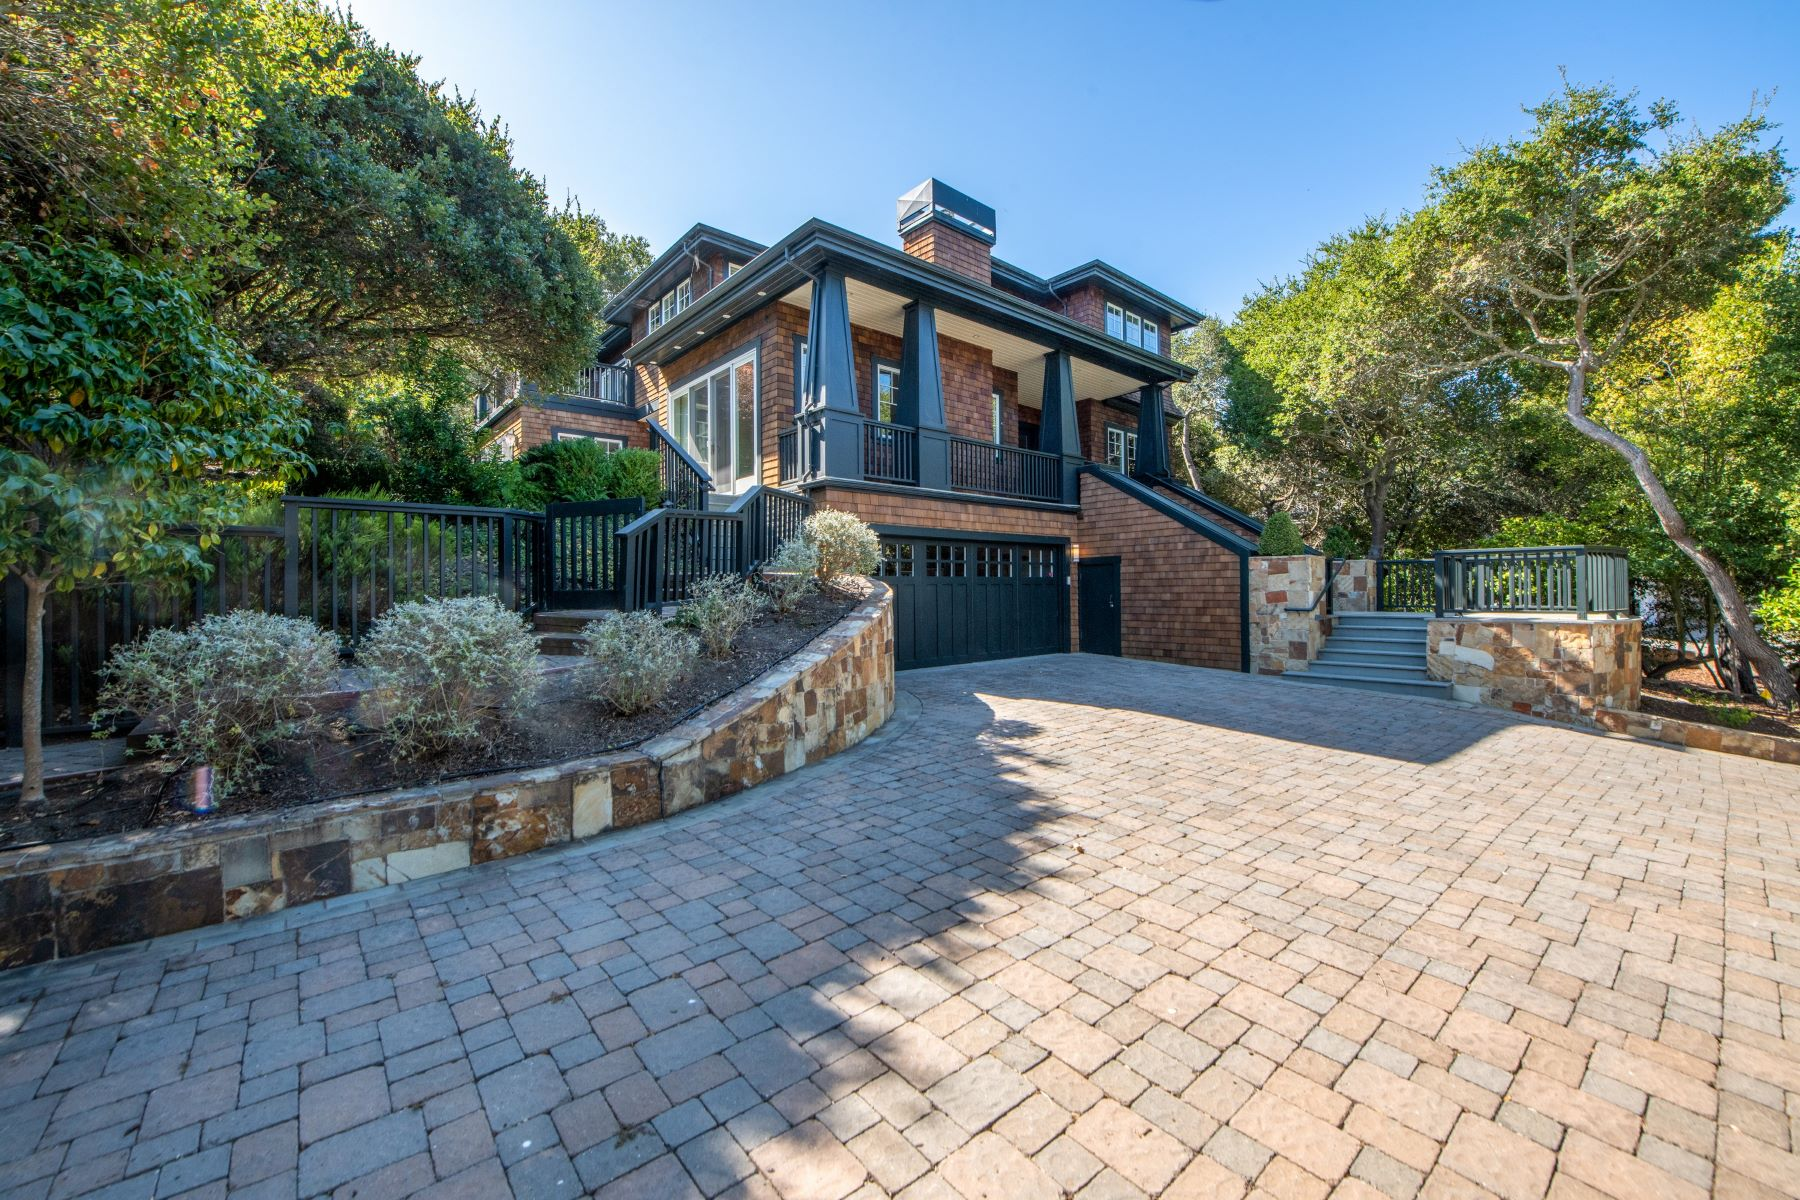 Single Family Homes for Sale at Timeless Blend of Lavish Finishes and Casual Living 4 Old Landing Rd Tiburon, California 94920 United States